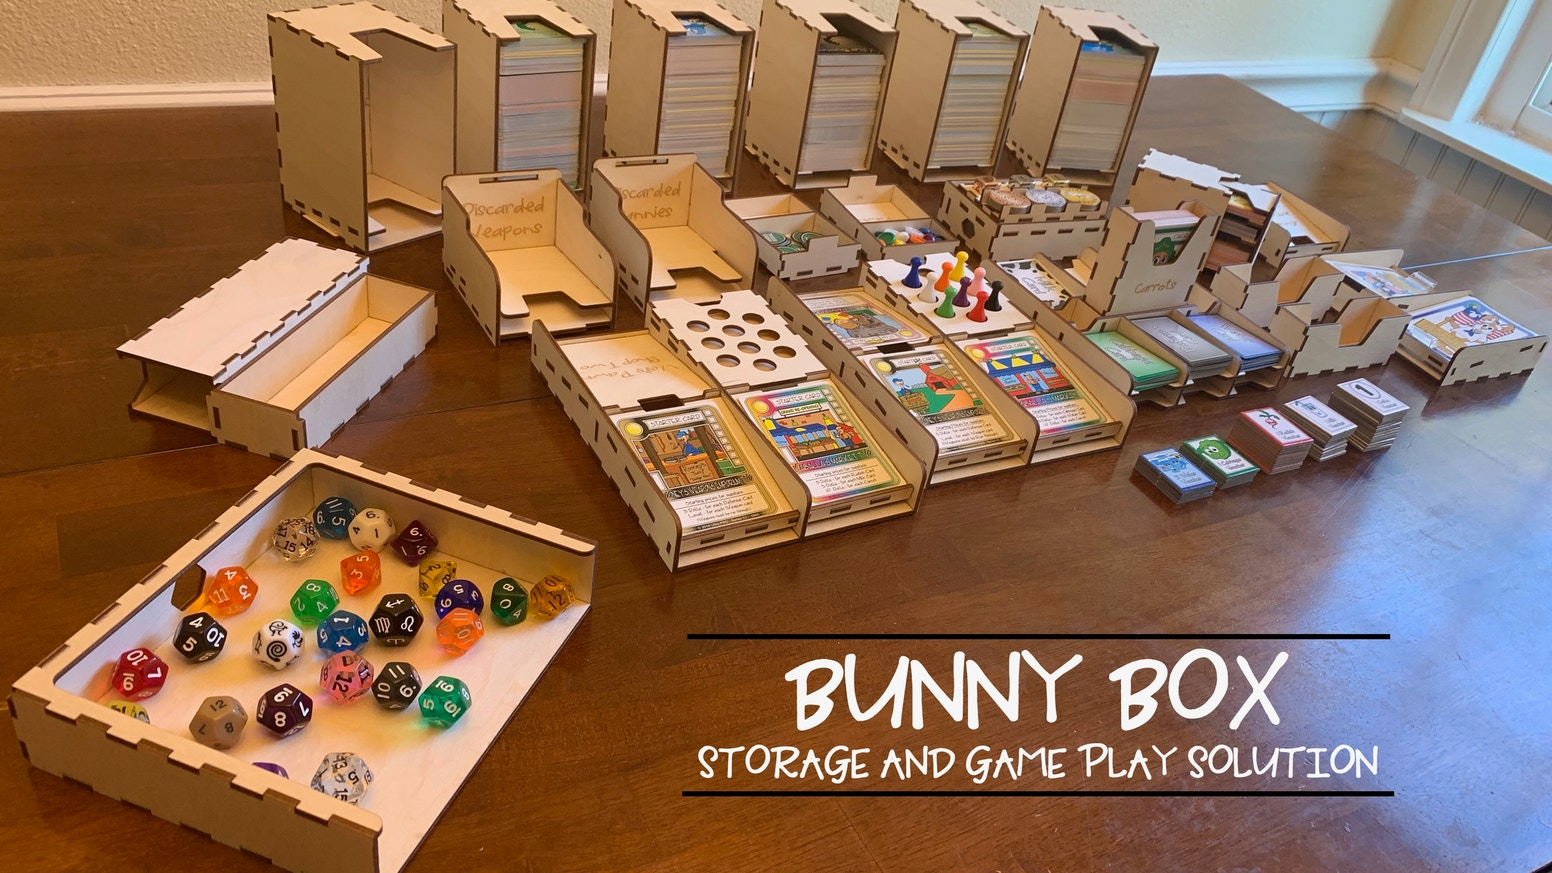 Bunny Box Storage and Game Play Solution by Sand Box Gaming